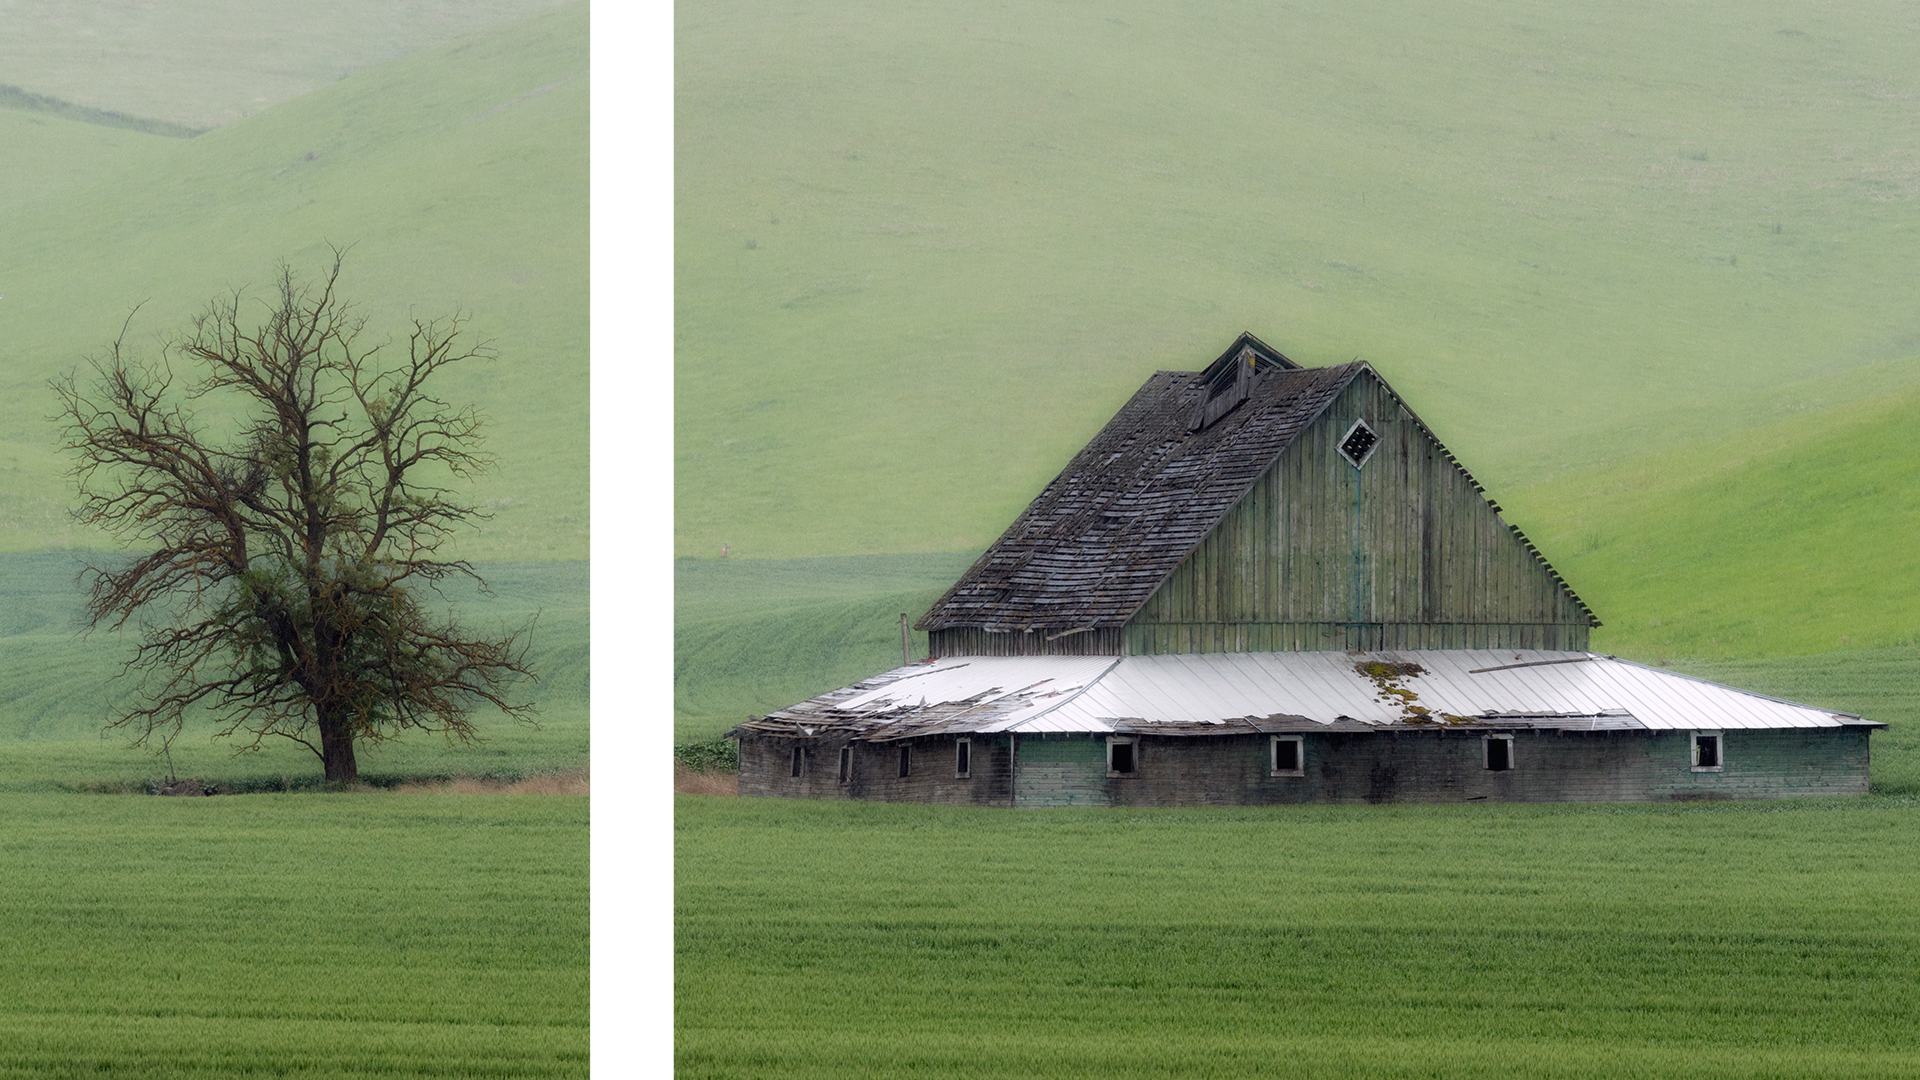 Lynda > Advanced Photography: Diptychs, Triptychs, and Aspect Ratios